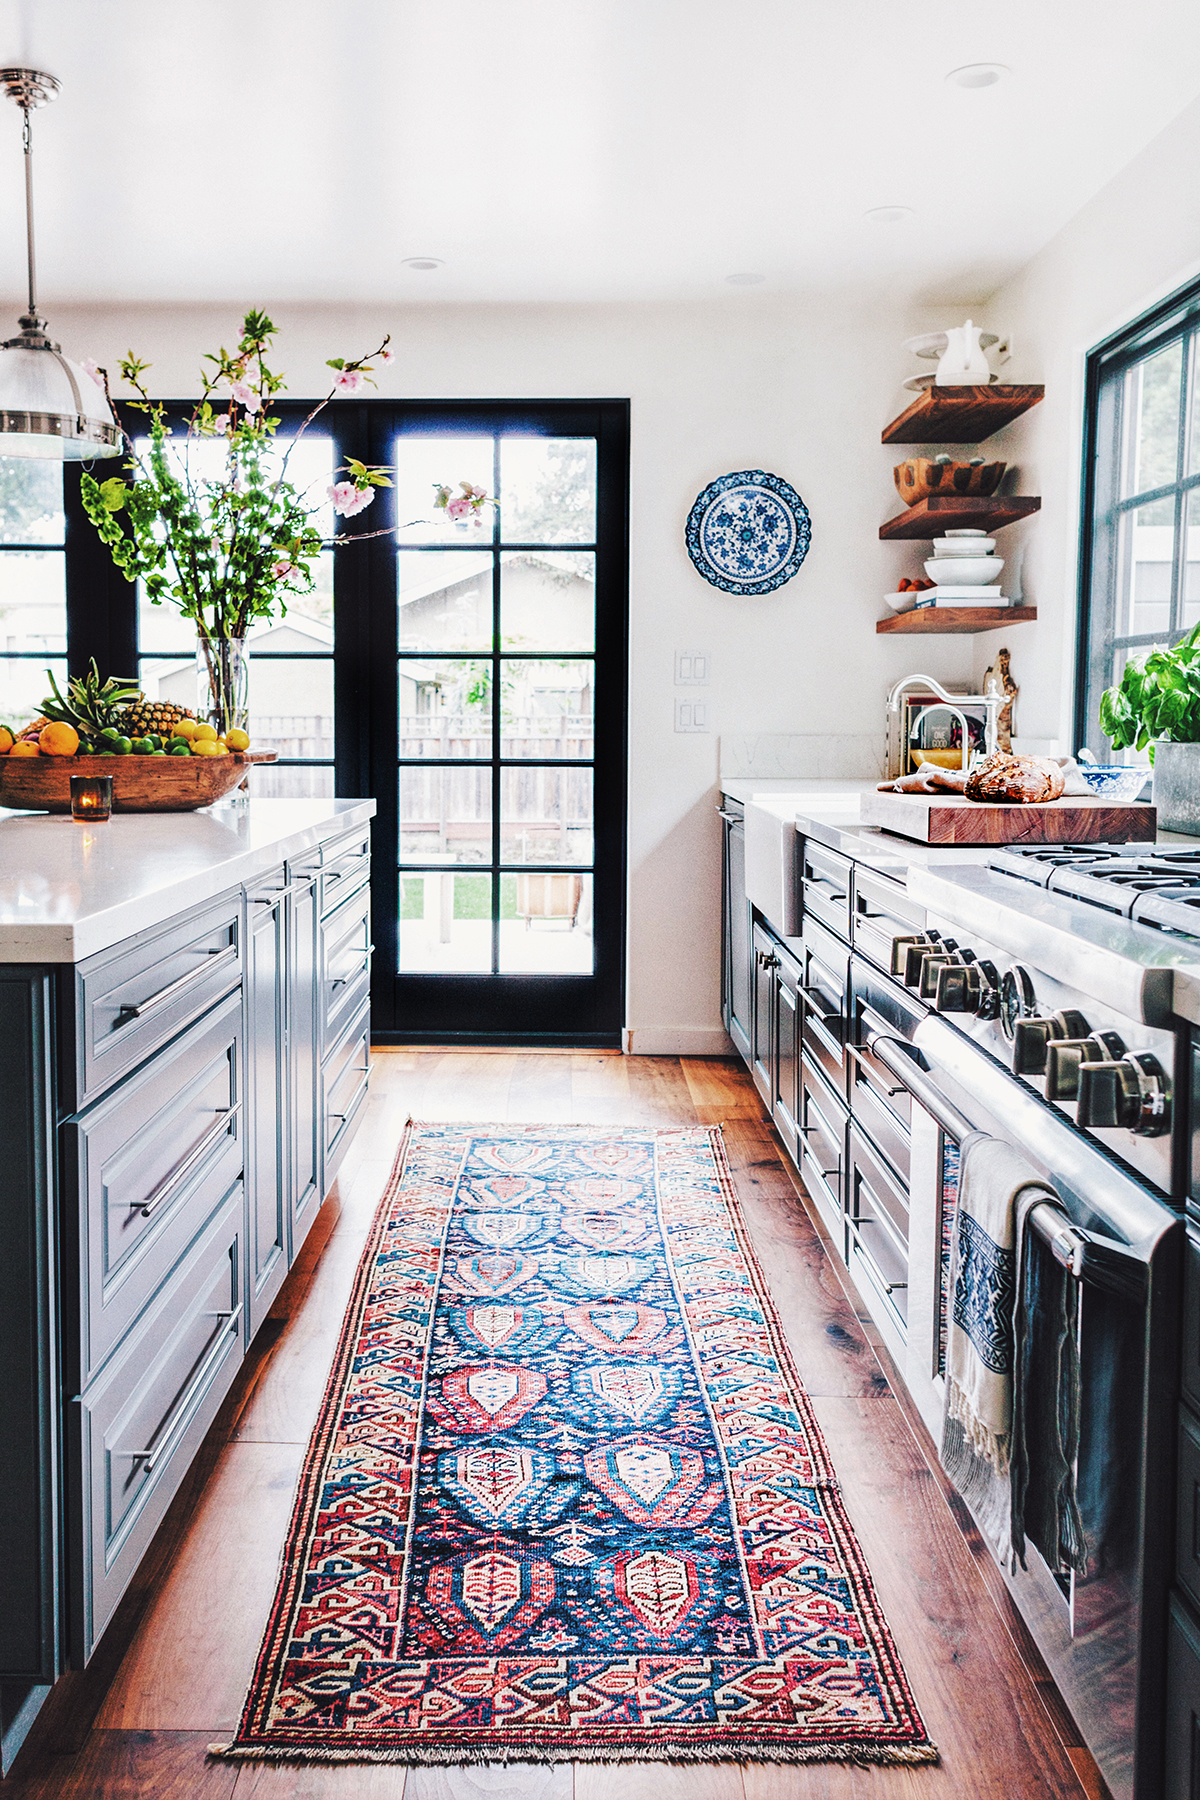 Finding The Right Antique Rug | Honestly WTF - Pinterest Picks - Bohemian Rugs